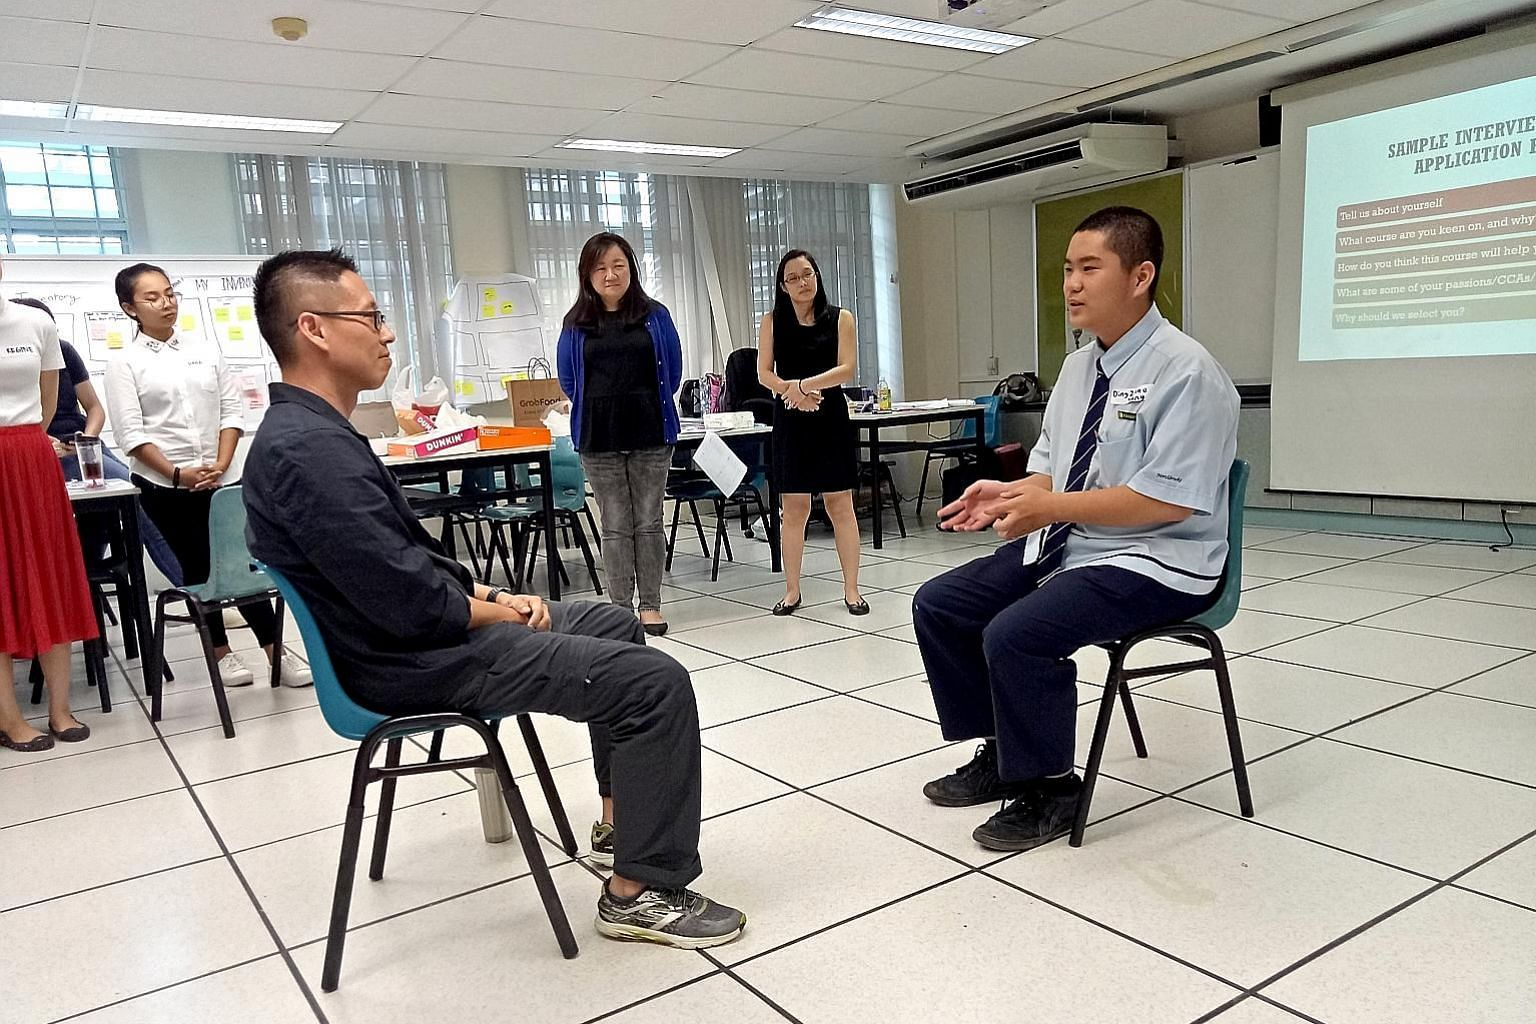 Northbrooks Secondary School principal Nick Chan (left) doing a mock interview with Secondary 3 student Ding Zhao Yang in a workshop organised by Access. The group's pilot run in June involved 19 students.